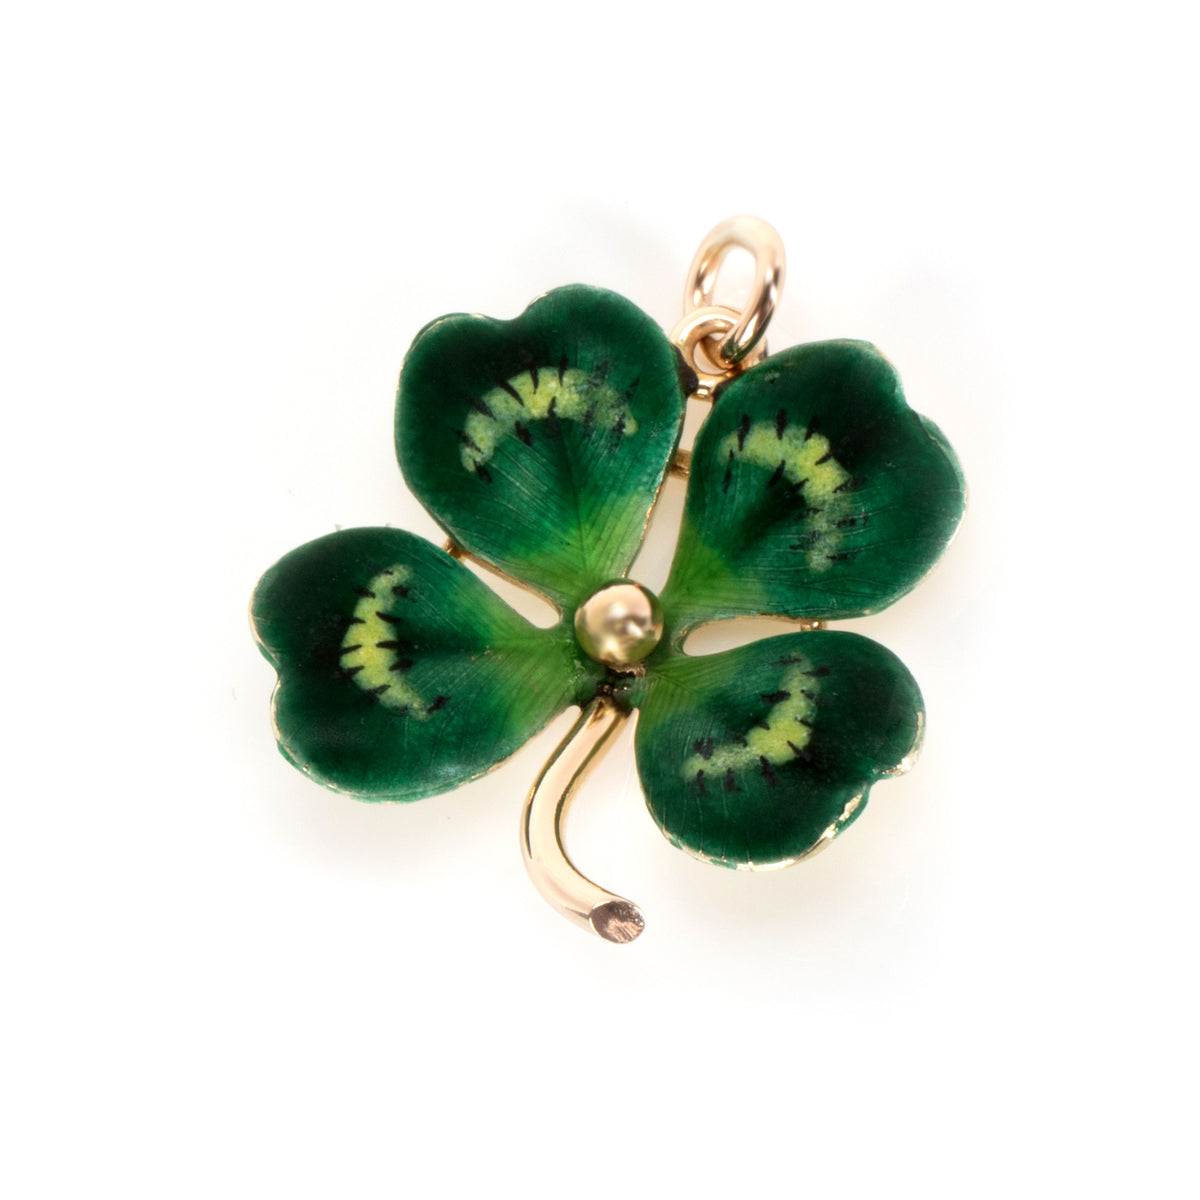 Vintage Four Leaf Clover Lucky Charm in 14K Yellow Gold